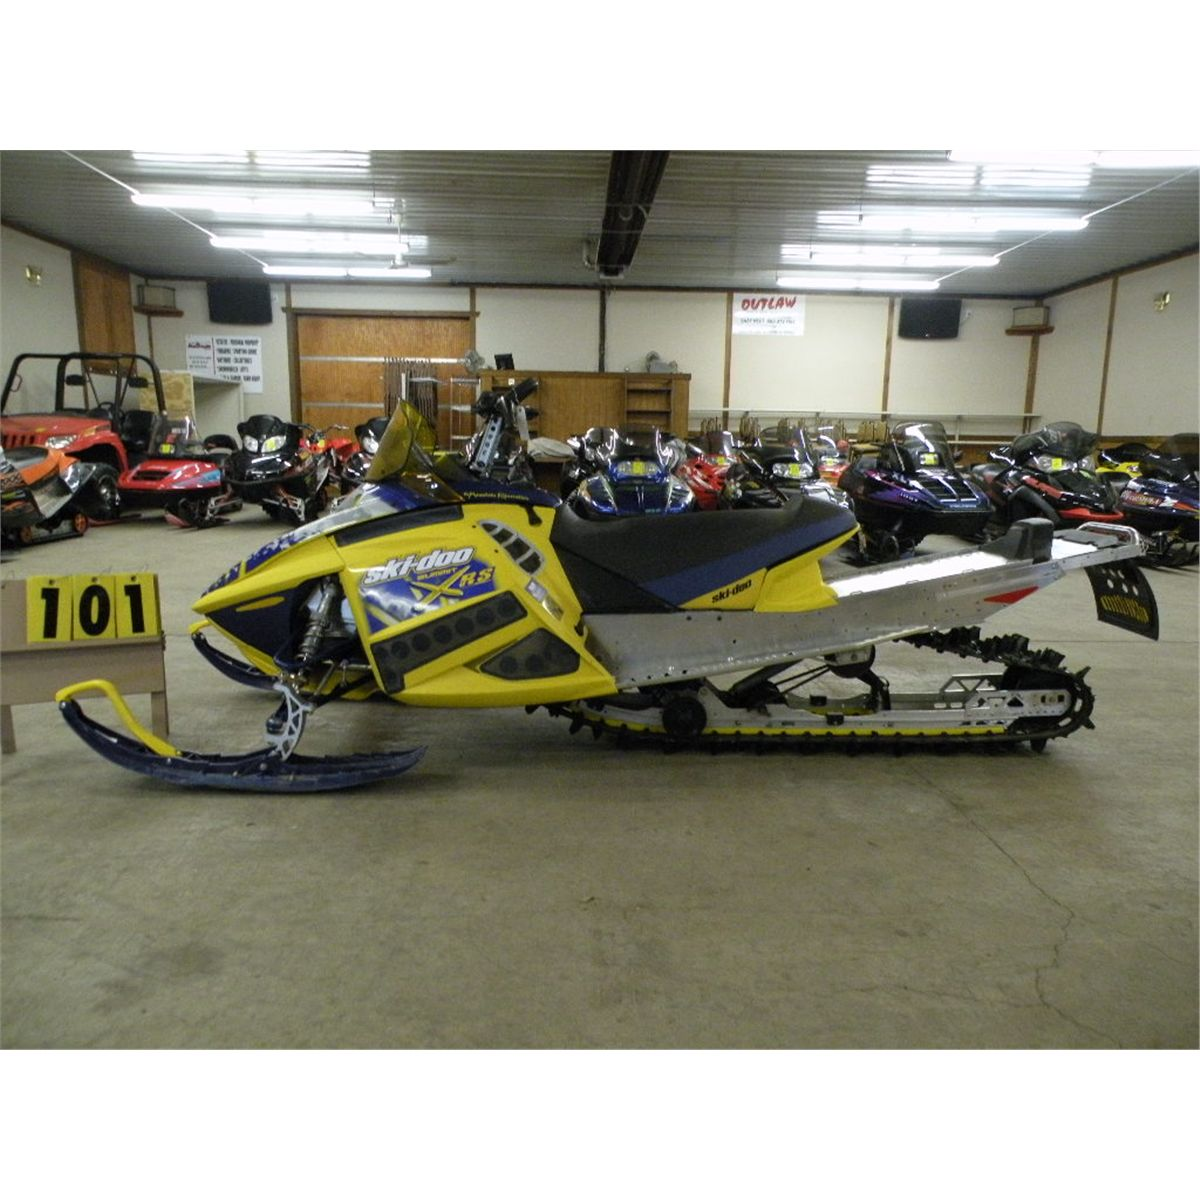 2007 Ski Doo Summit X Rs 800 Vin 2bpscr7a77v000409